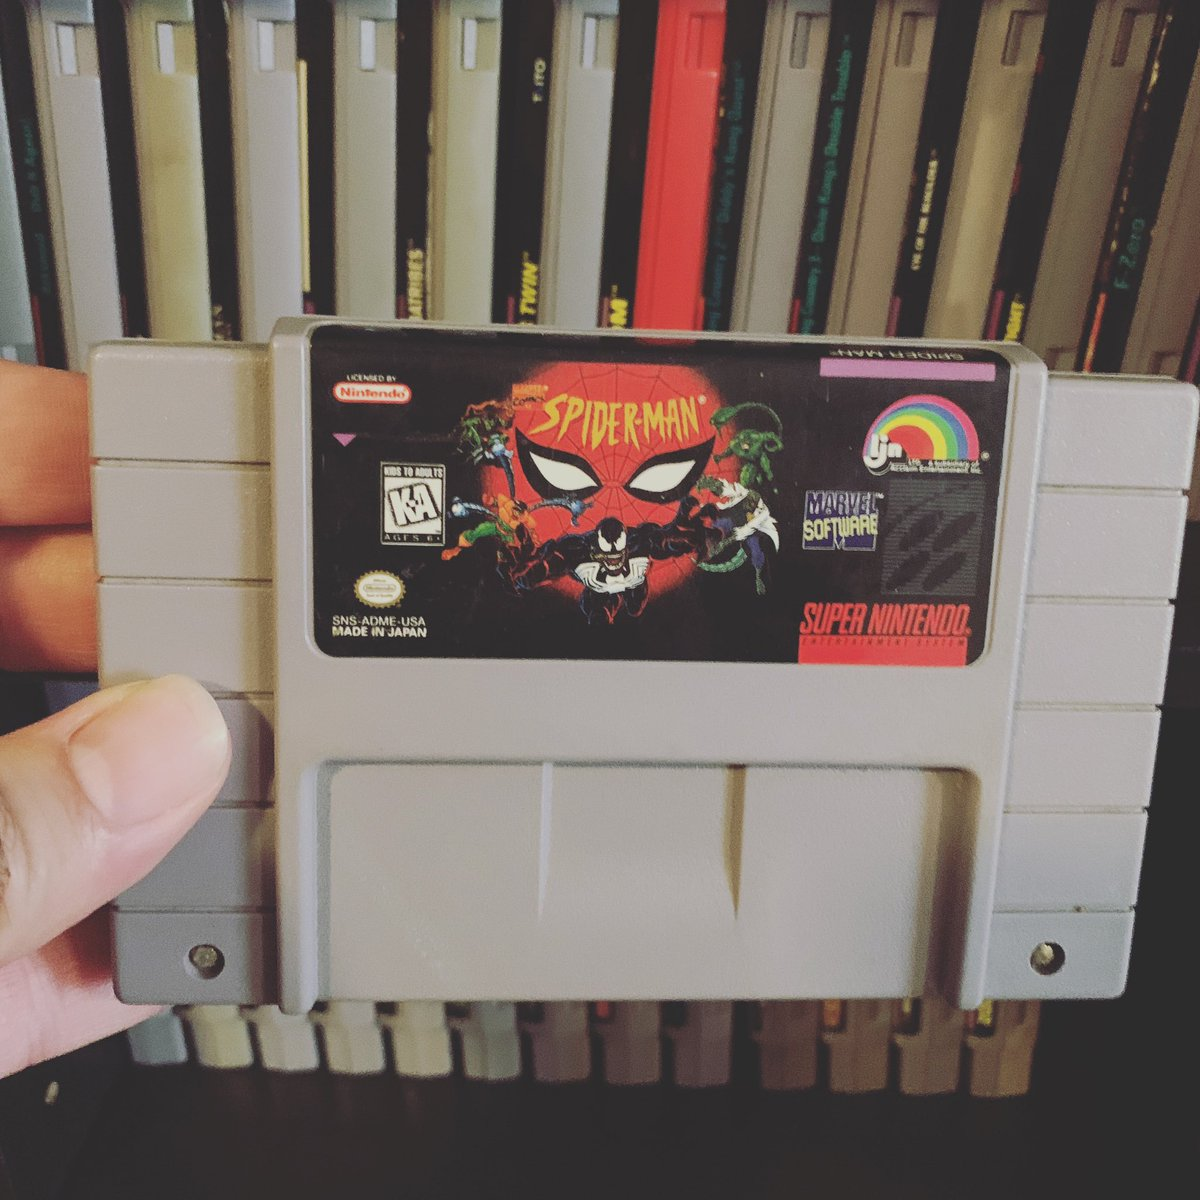 Added to the #snes collection  #supernintendo #nintendo #spiderman #marvel #retrogaming #retrogames #retrogamer #retrocollector #gamecollecting #gamecollection #gaming #gamer #gamers #gamingcommunity #oldschoolgames #oldschoolgamer #oldschoolgaming #classicgaming #videogamespic.twitter.com/UdLVSMKebq